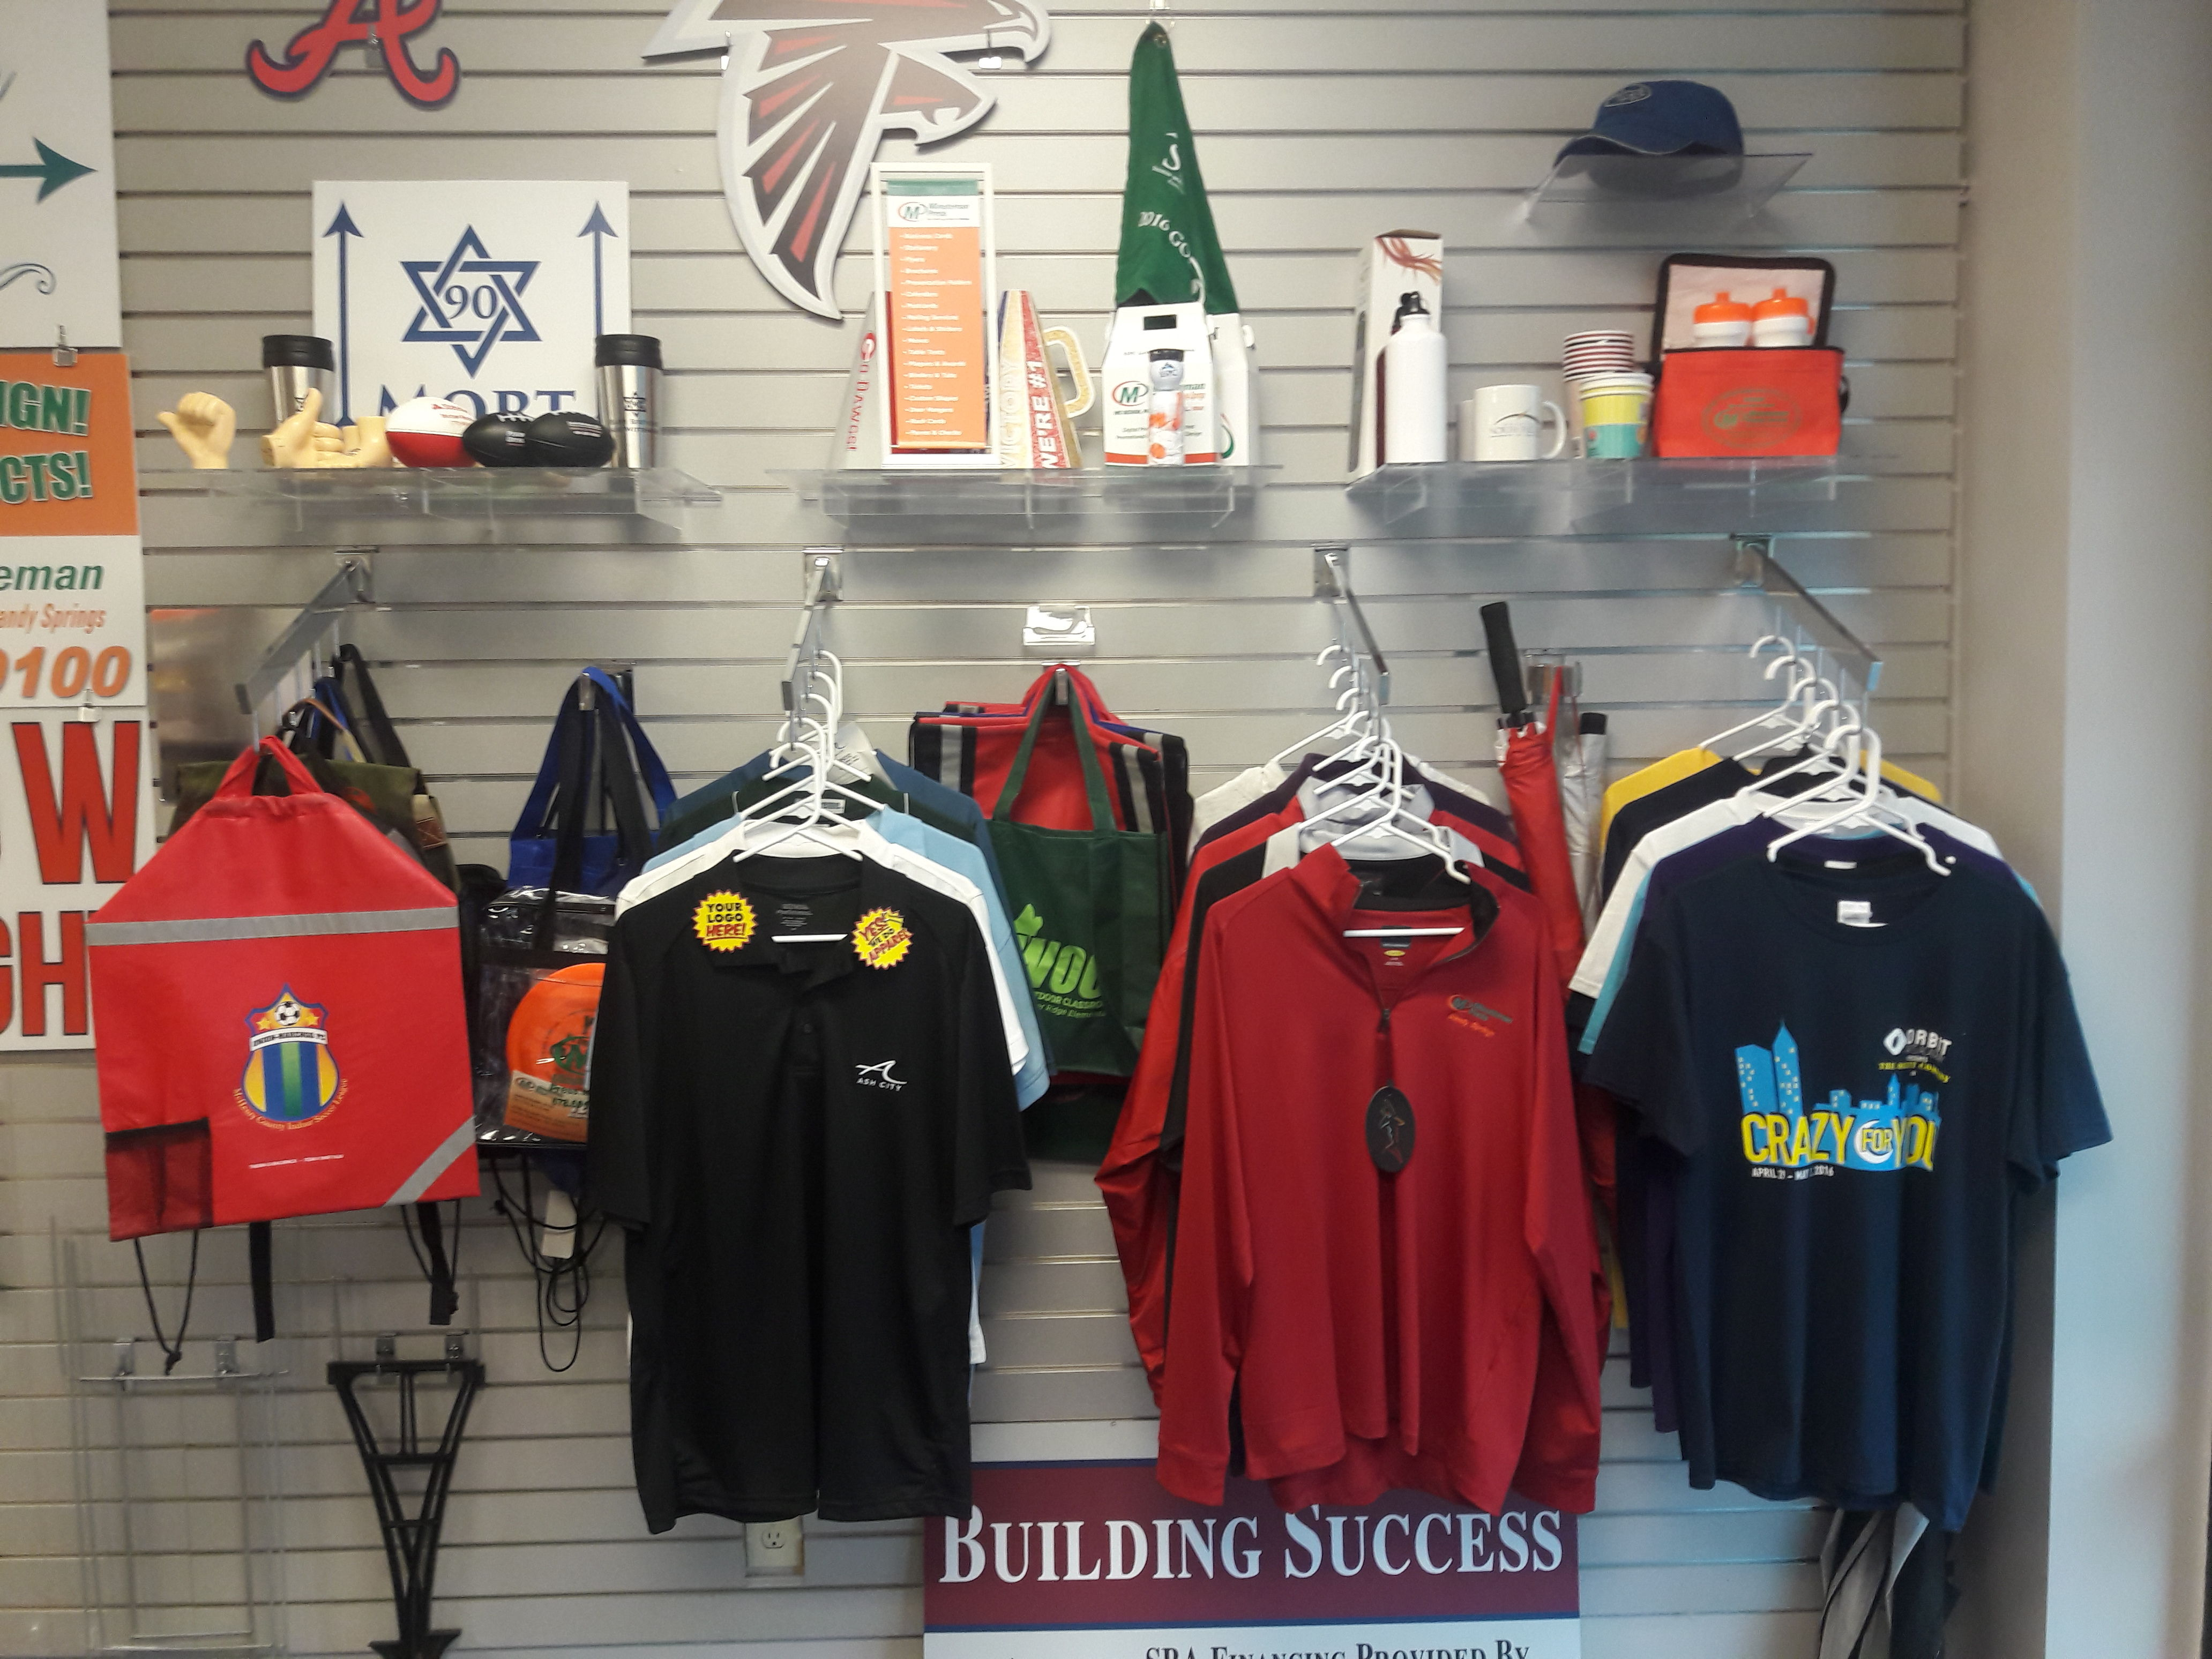 Minuteman Press, Sandy Springs, GA – Promotional Products Display http://www.minutemanpressfranchise.com